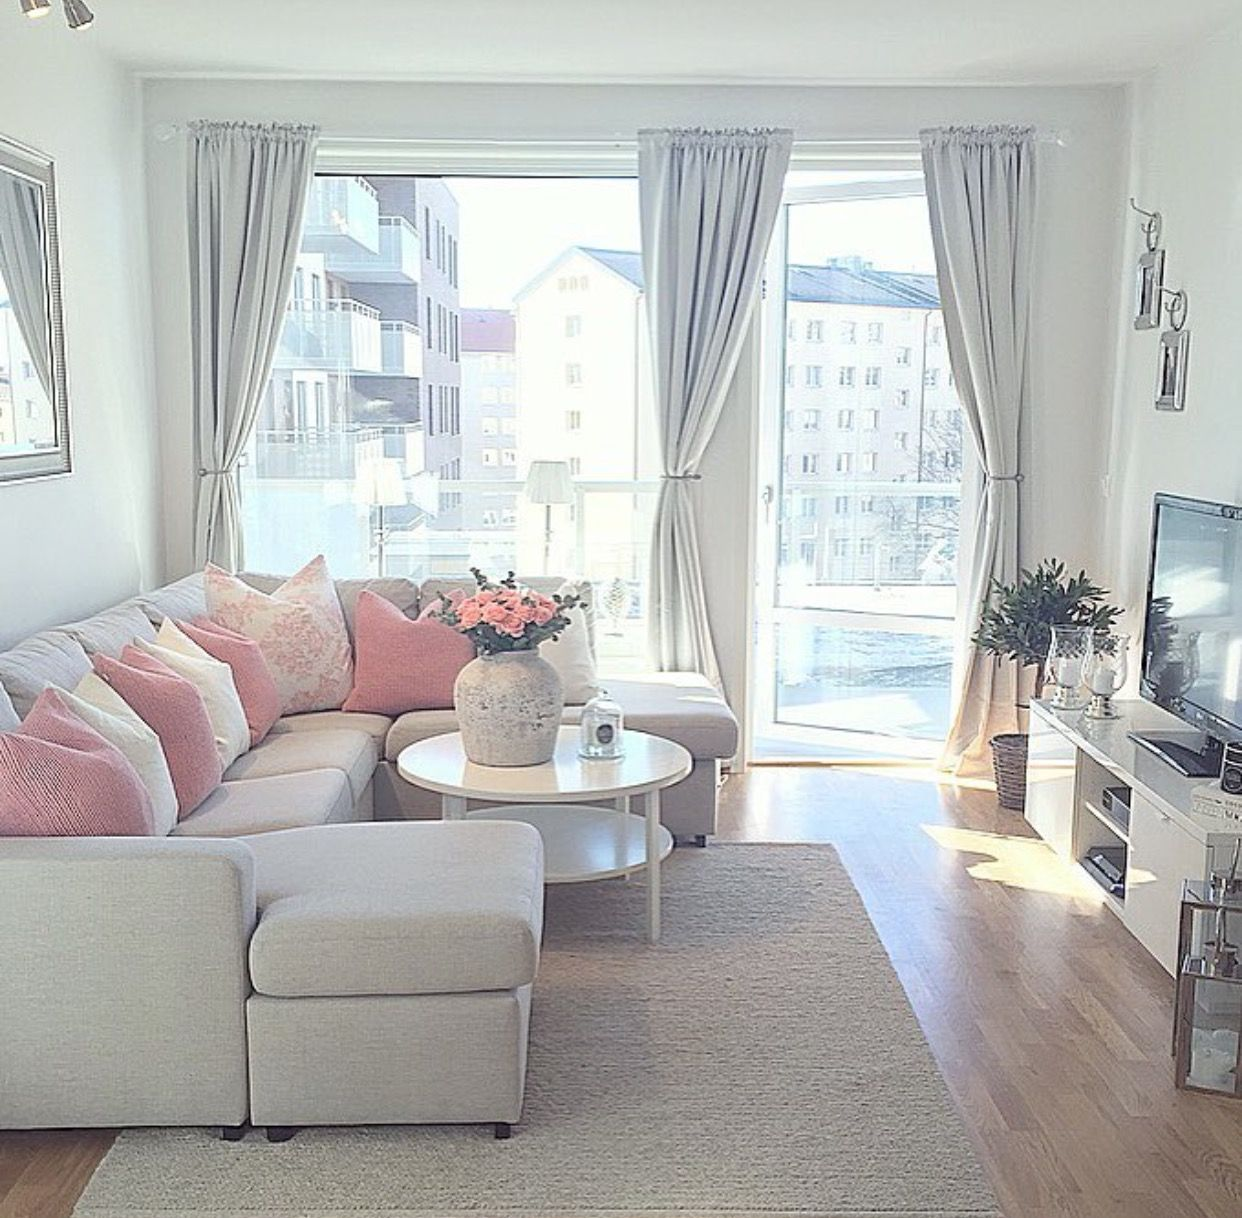 Pin by NGM Designs on Designing With Small Spaces | Pinterest ...